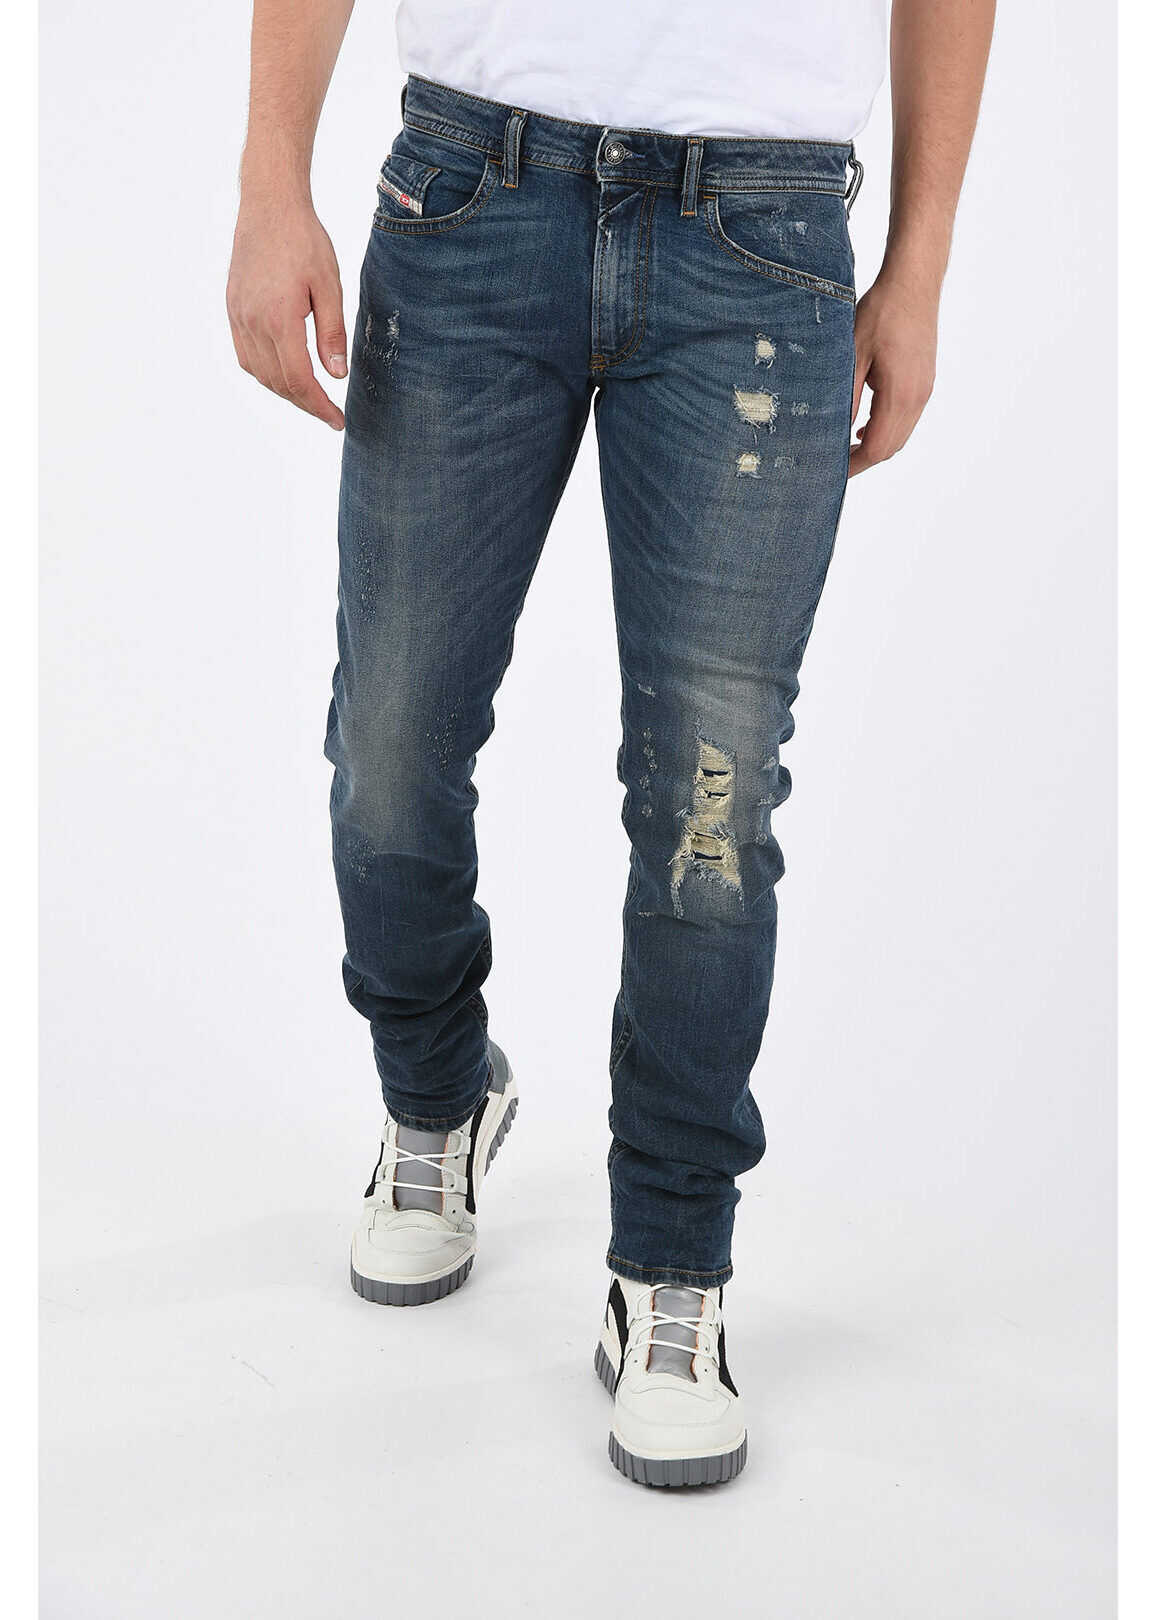 Diesel 16cm Distressed THOMMER Jeans L34 BLUE imagine